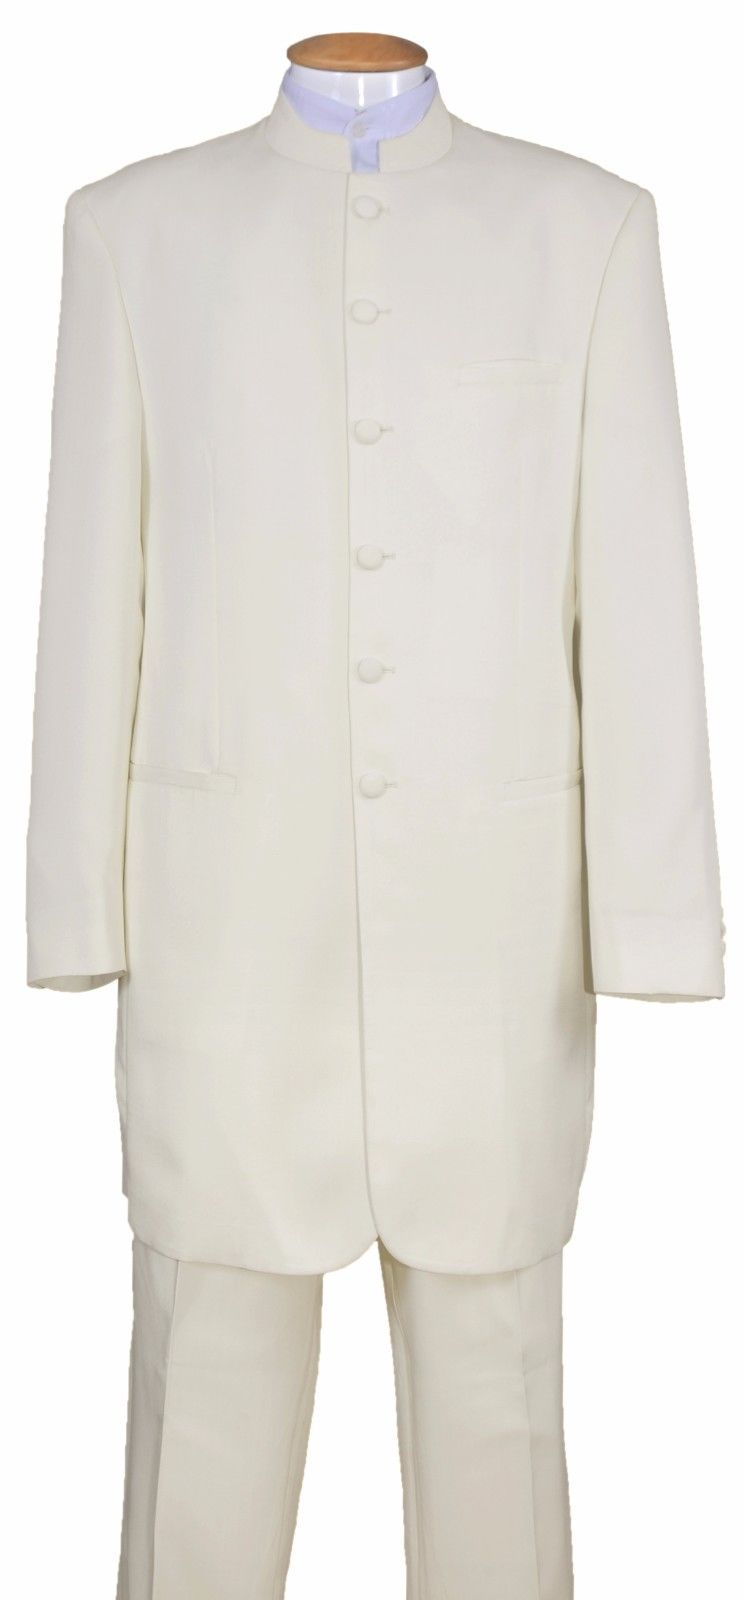 Fortino Landi Suit 6905H-Cream - Church Suits For Less